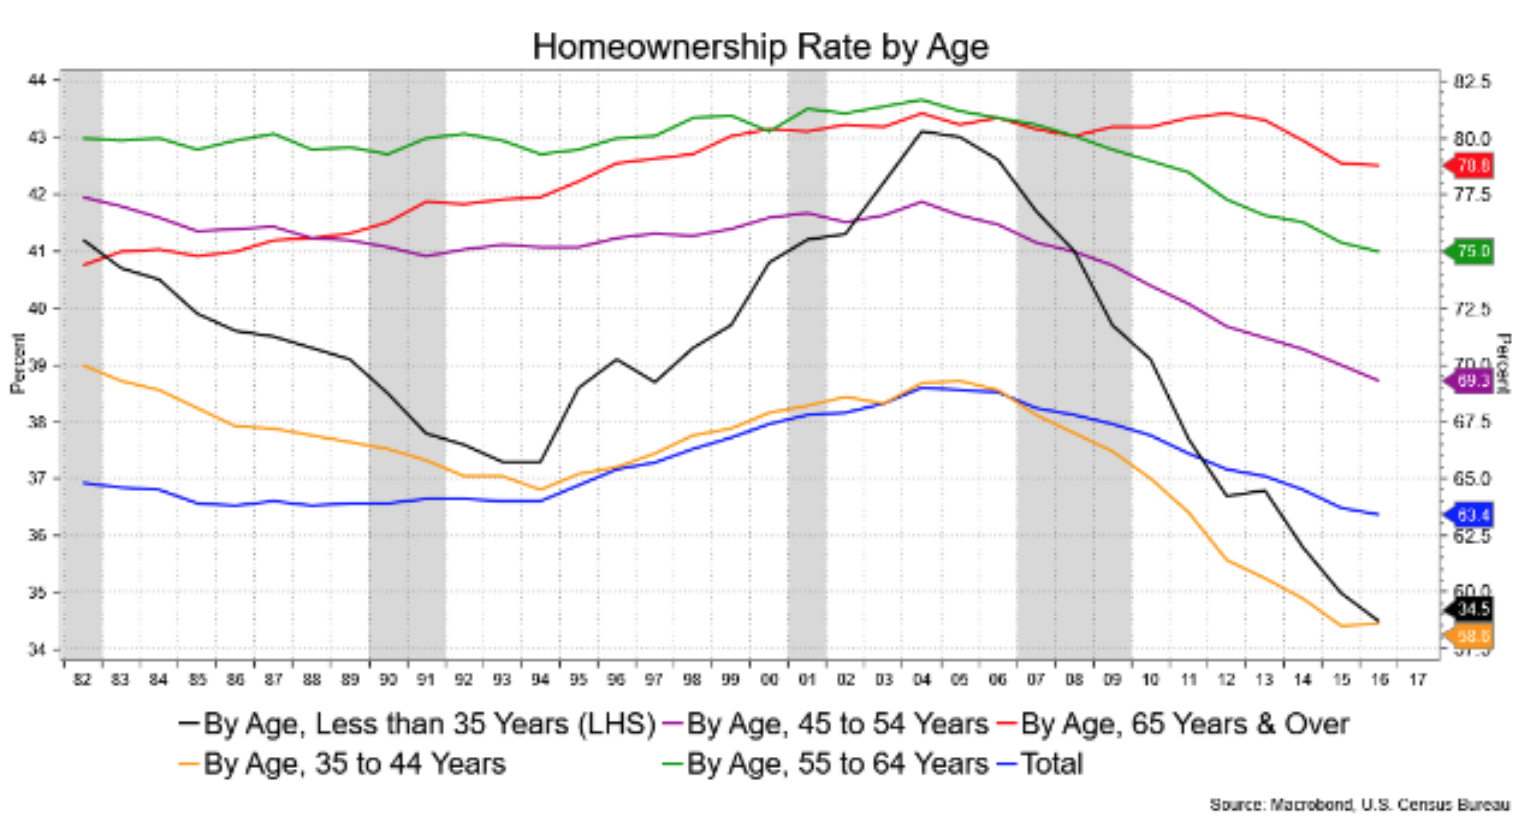 Homeownership Rate By Age